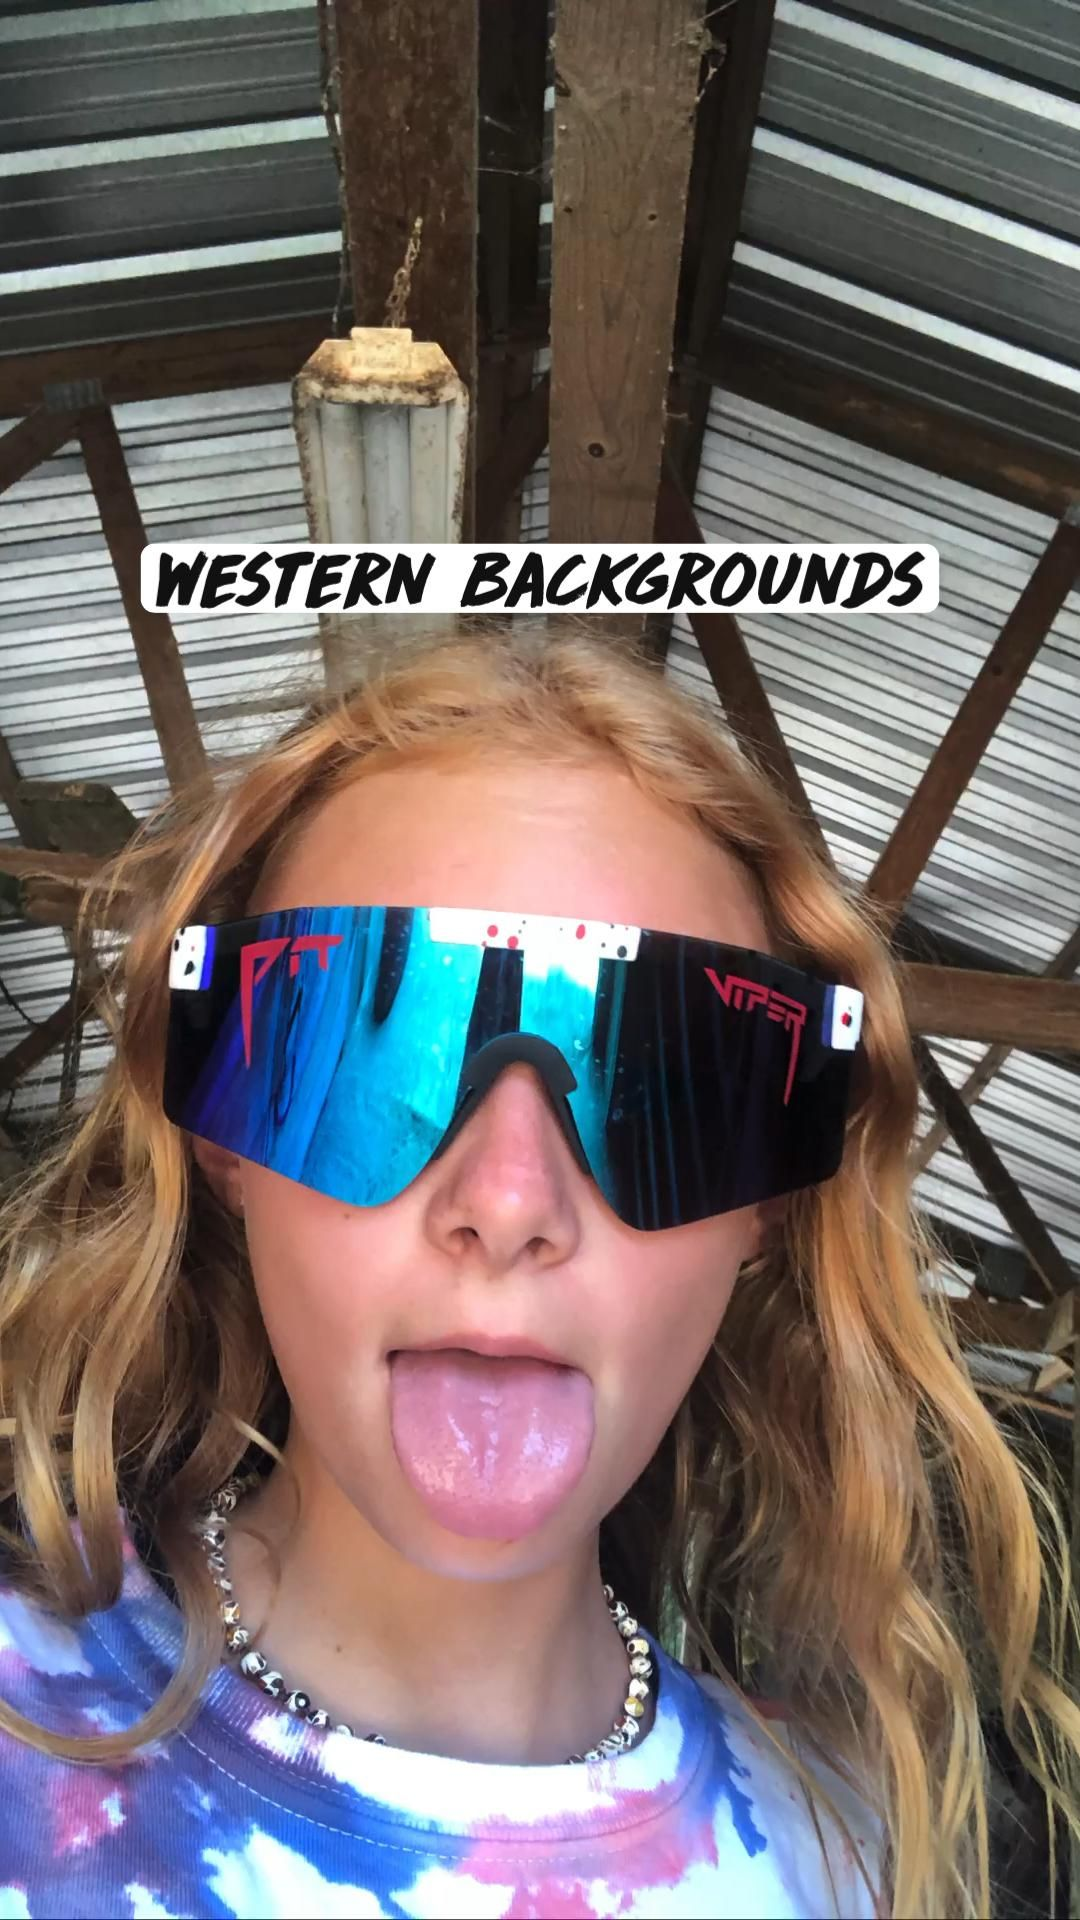 Western backgrounds